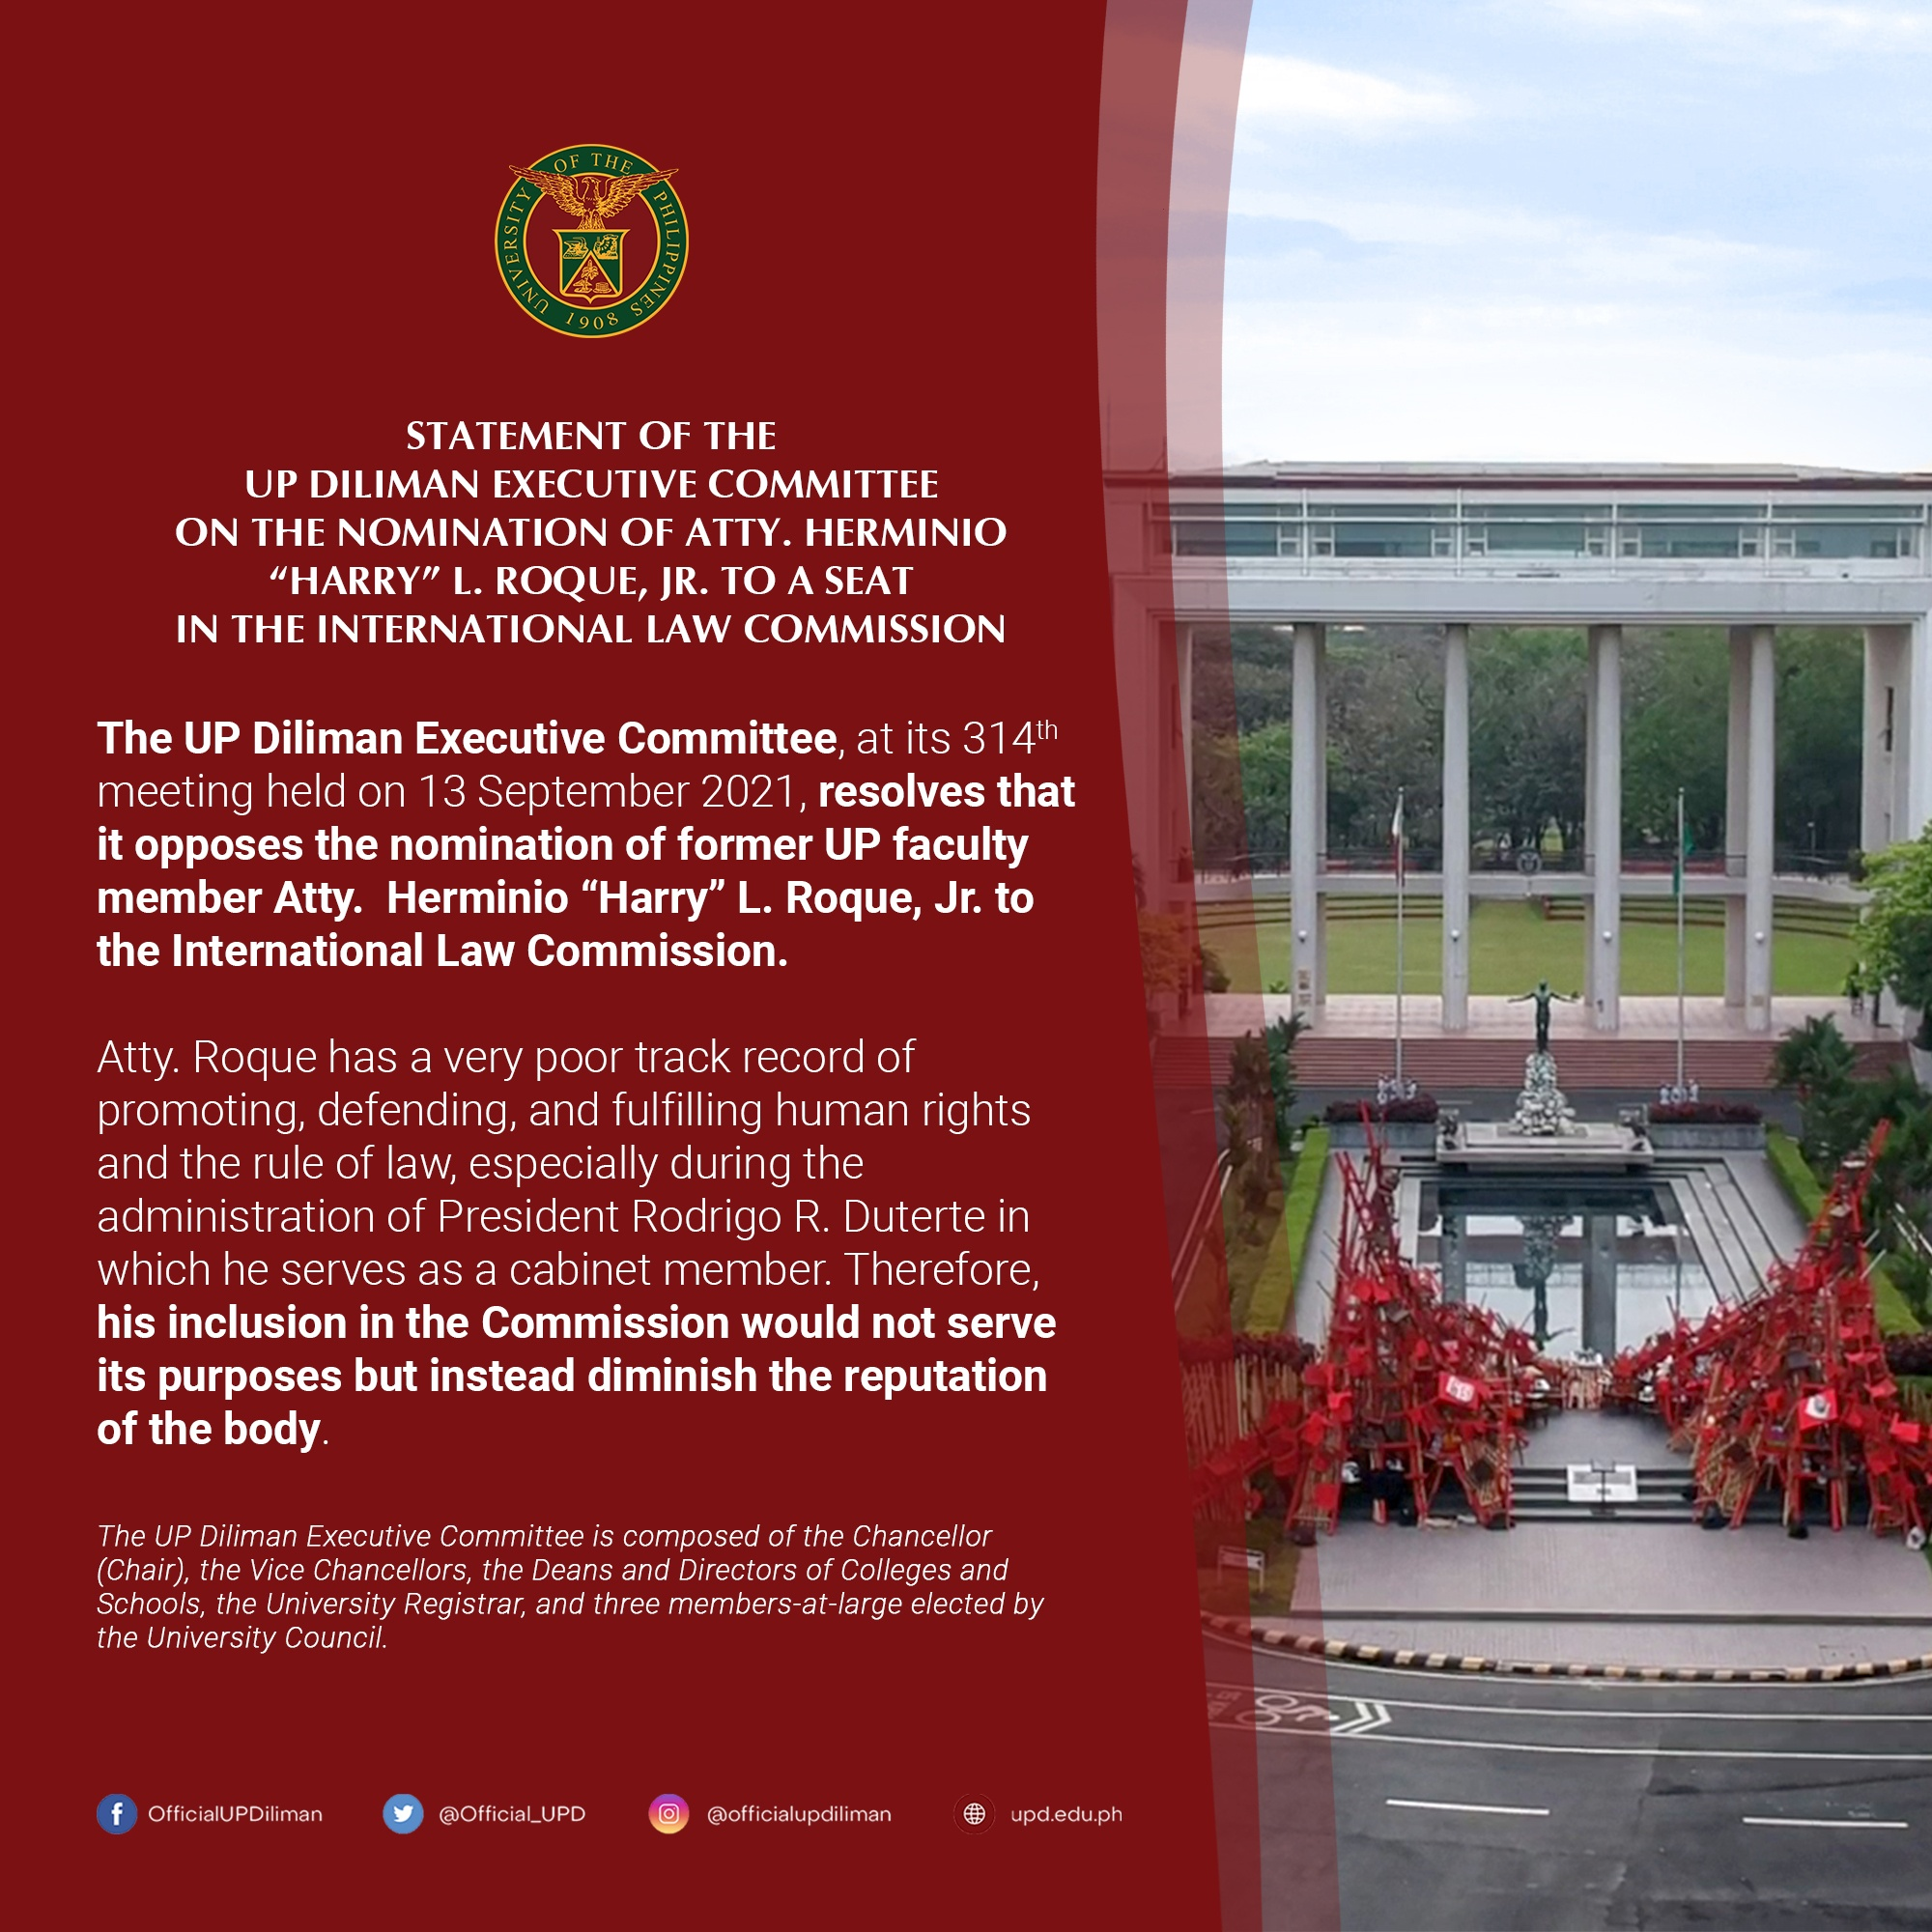 """The UP Diliman Executive Committee, at its 314th meeting held on 13 September 2021, resolves that it opposes the nomination of former UP faculty member Atty. Herminio """"Harry"""" L. Roque, Jr. to the International Law Commission. Atty. Roque has a very poor track record of promoting, defending, and fulfilling human rights and the rule of law, especially during the administration of President Rodrigo R. Duterte in which he serves as a cabinet member. Therefore, his inclusion in the Commission would not serve its purposes but instead diminish the reputation of the body."""